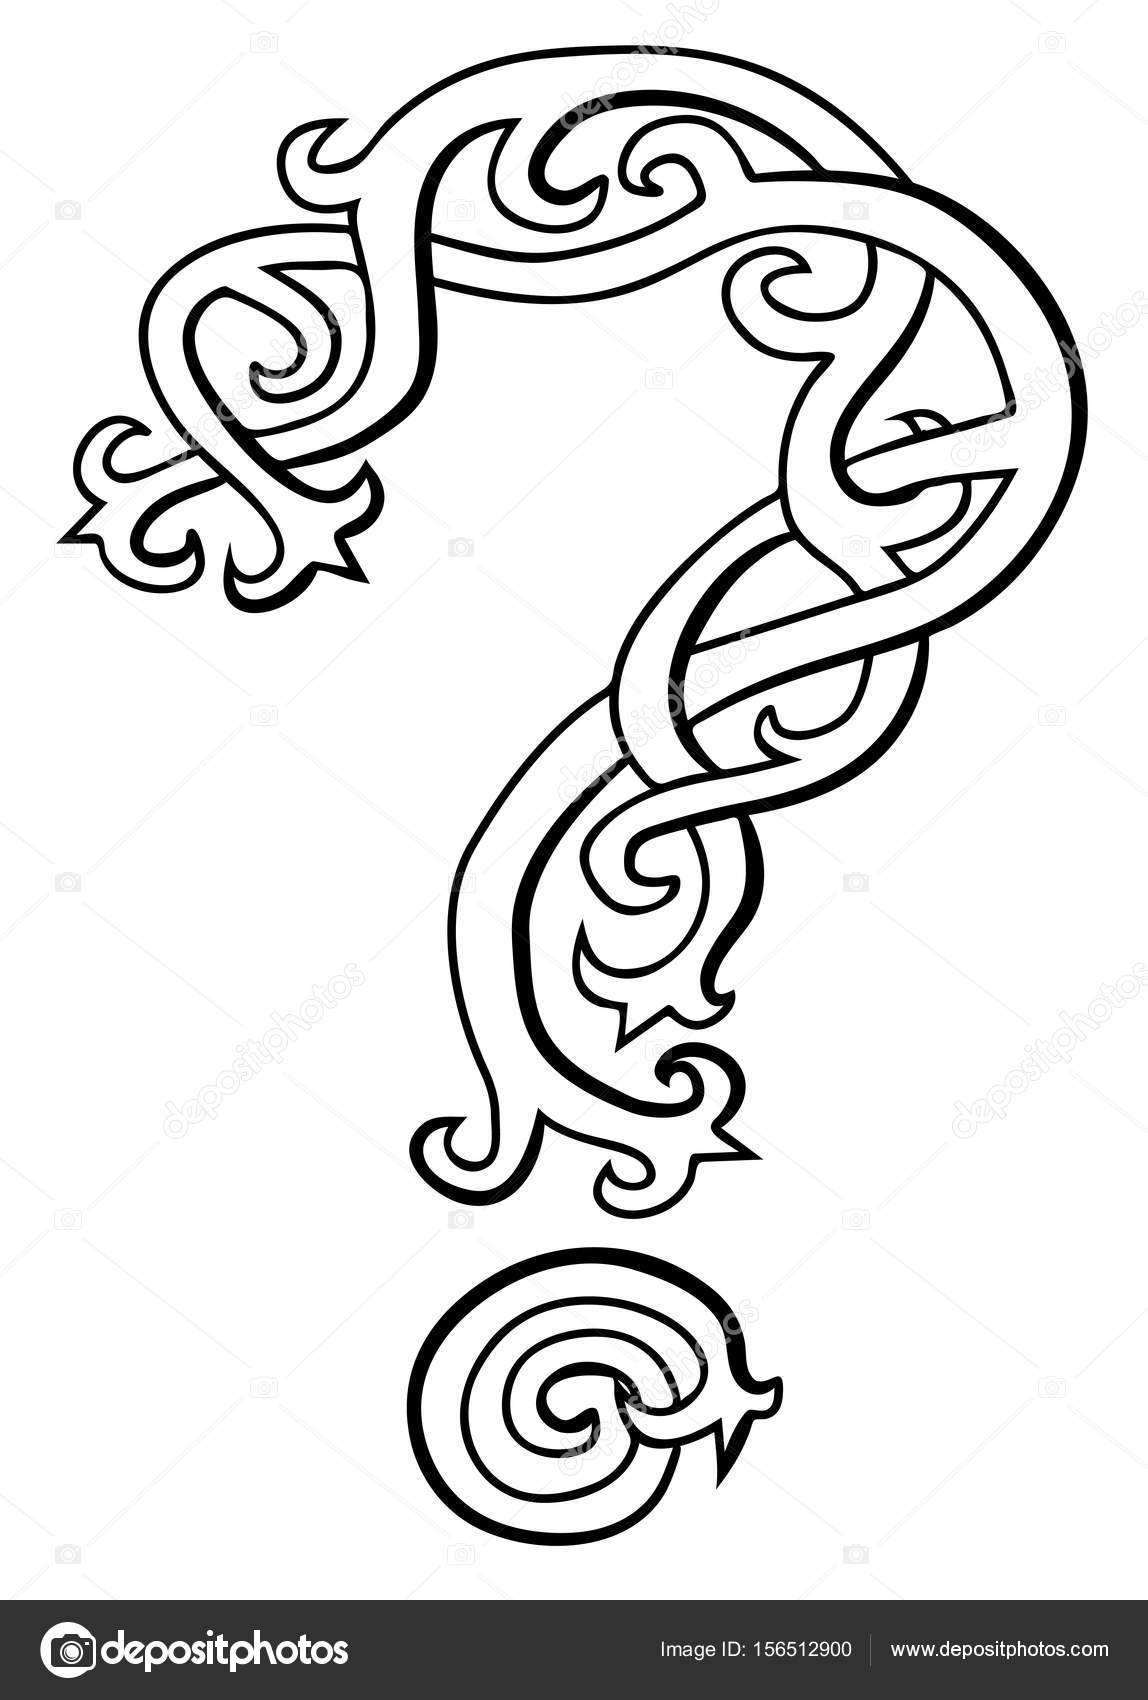 1148x1700 Vector Illustration Of Question Mark Celtic Style Black And White